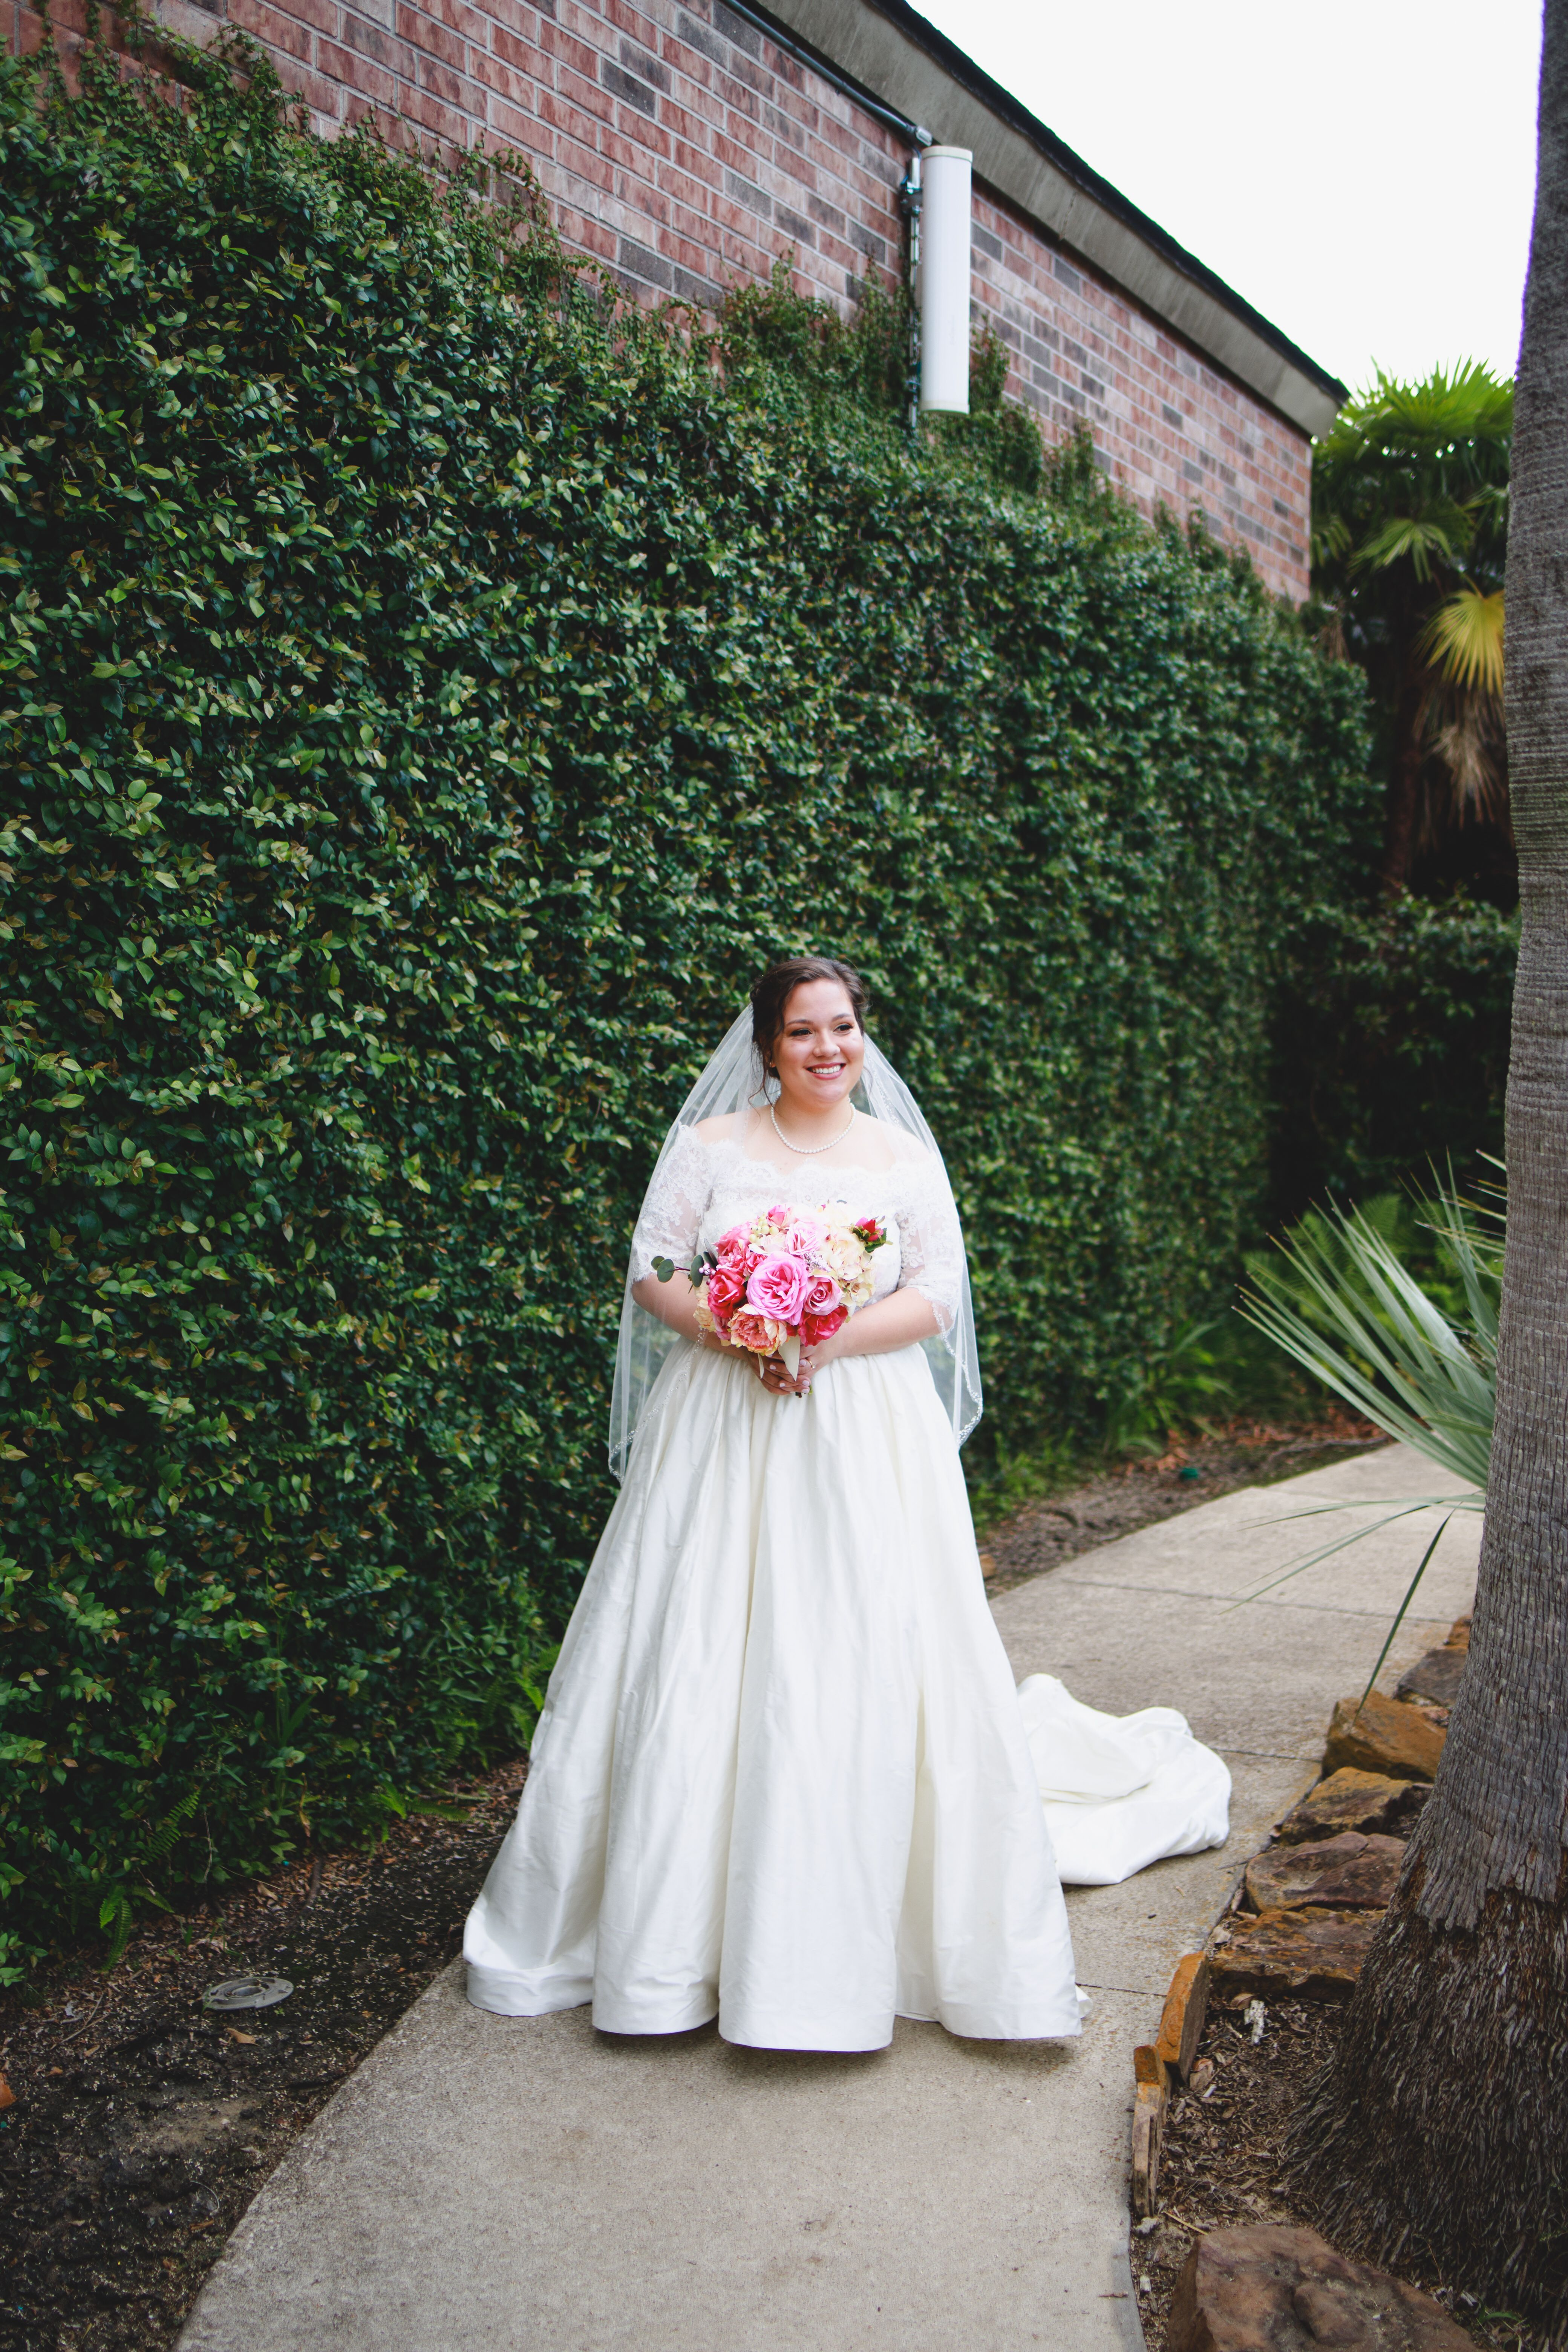 Our Real Bride Emily Looked Absolutely Stunning In Her Justin